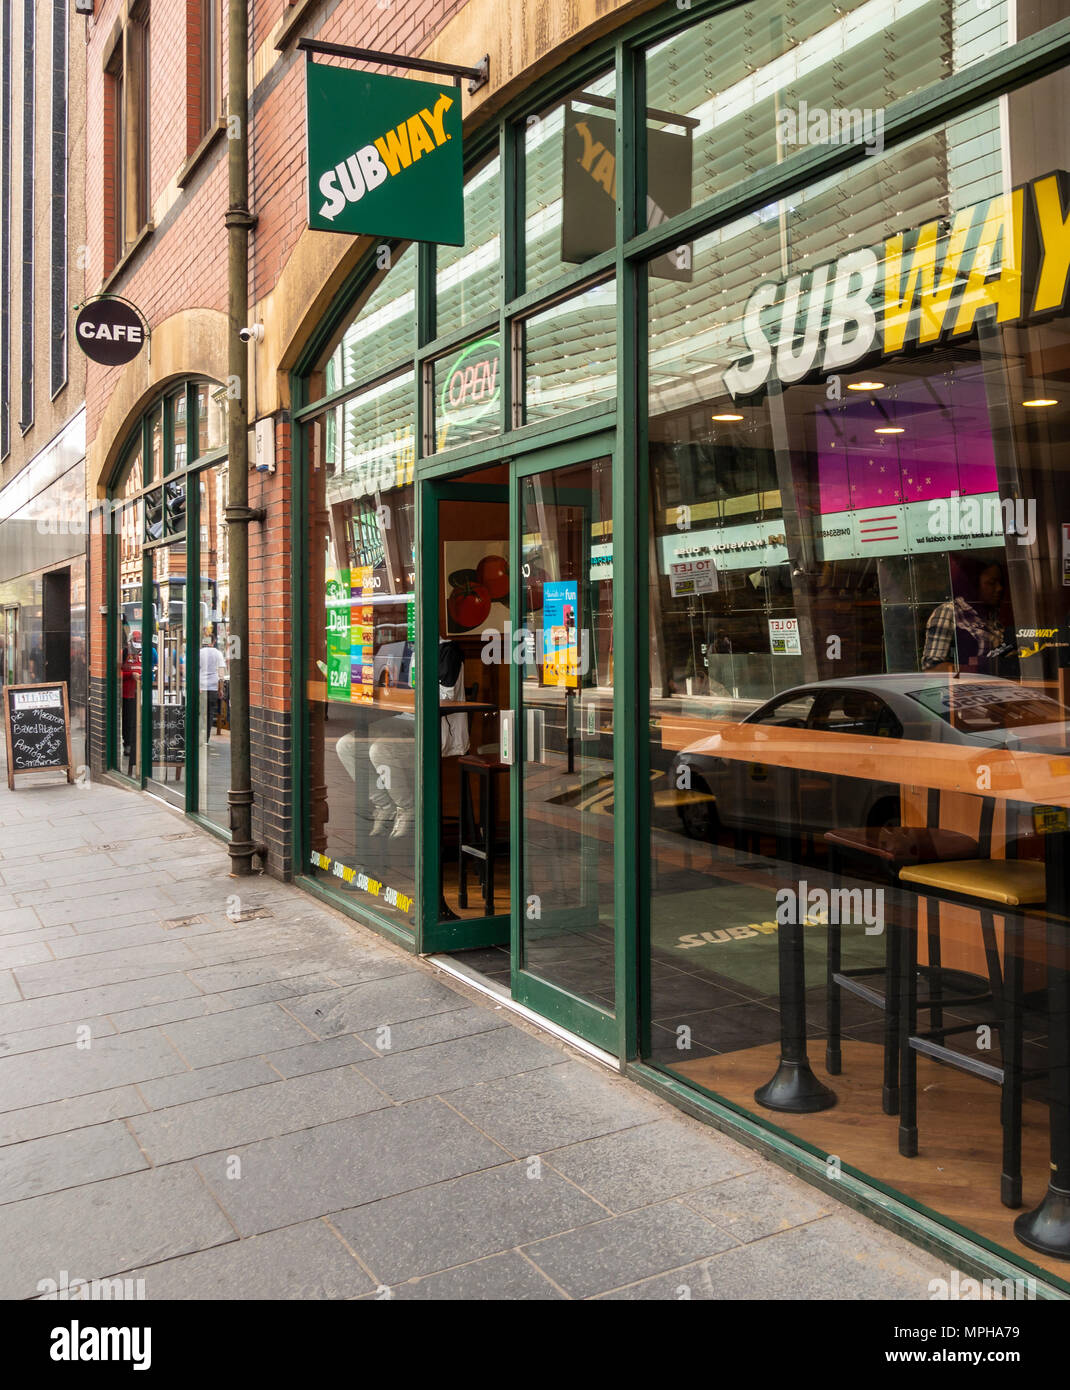 Entrance and window of the Subway Sandwich bar and Tiffany's Cafe, Glassford Street, Merchant City, Glasgow, Scotland, UK - Stock Image